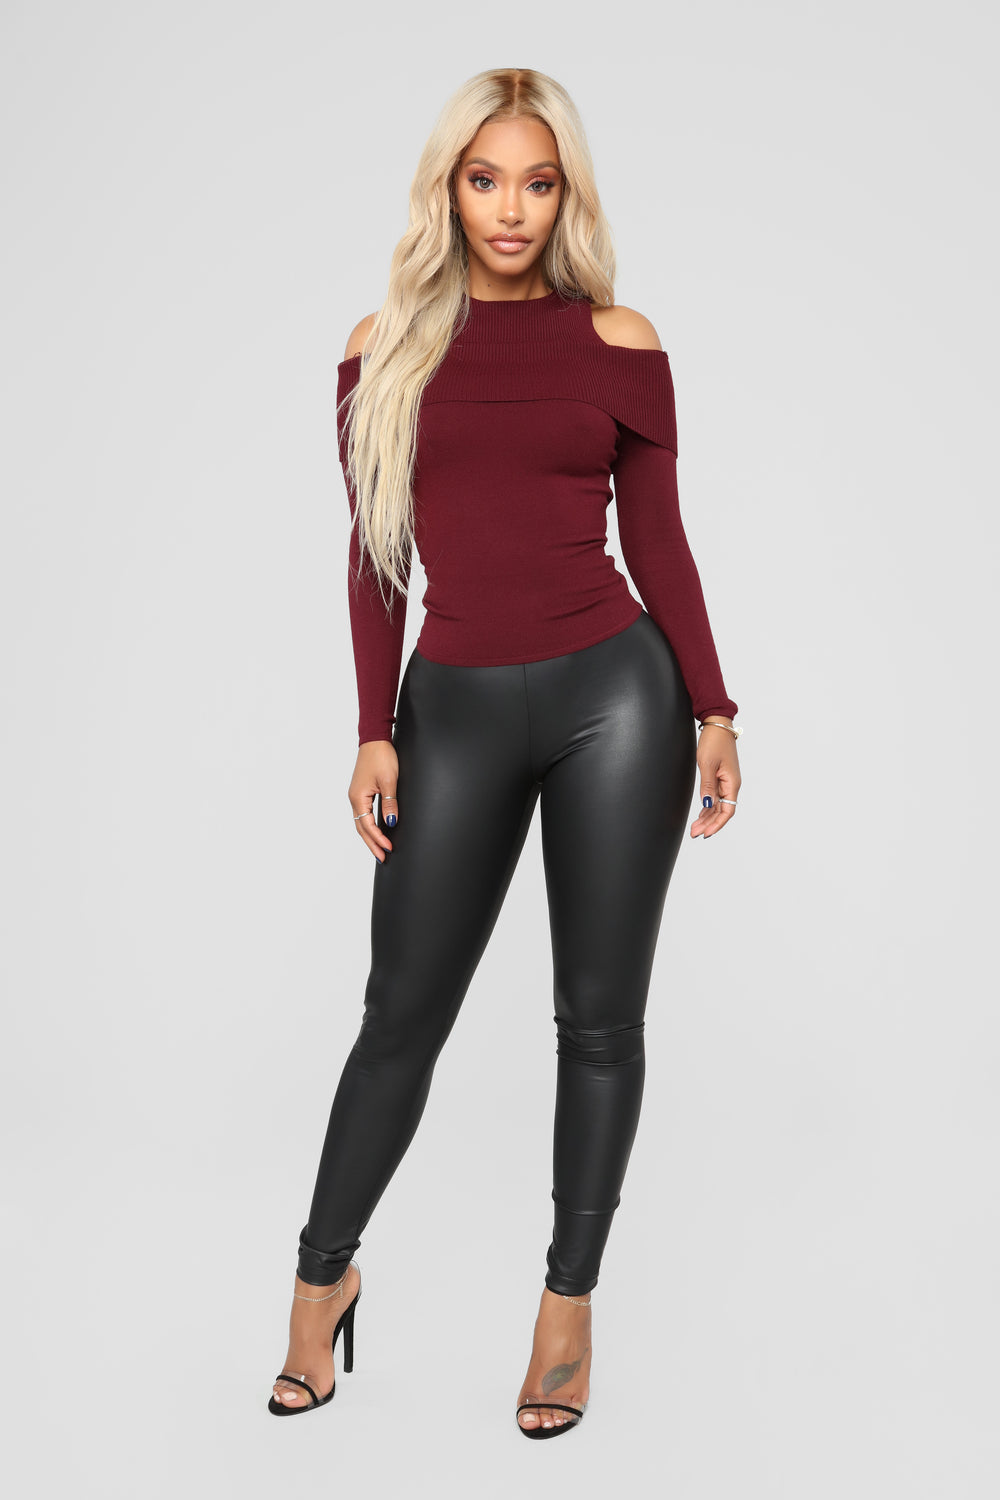 In The Cosmos Leggings - Black